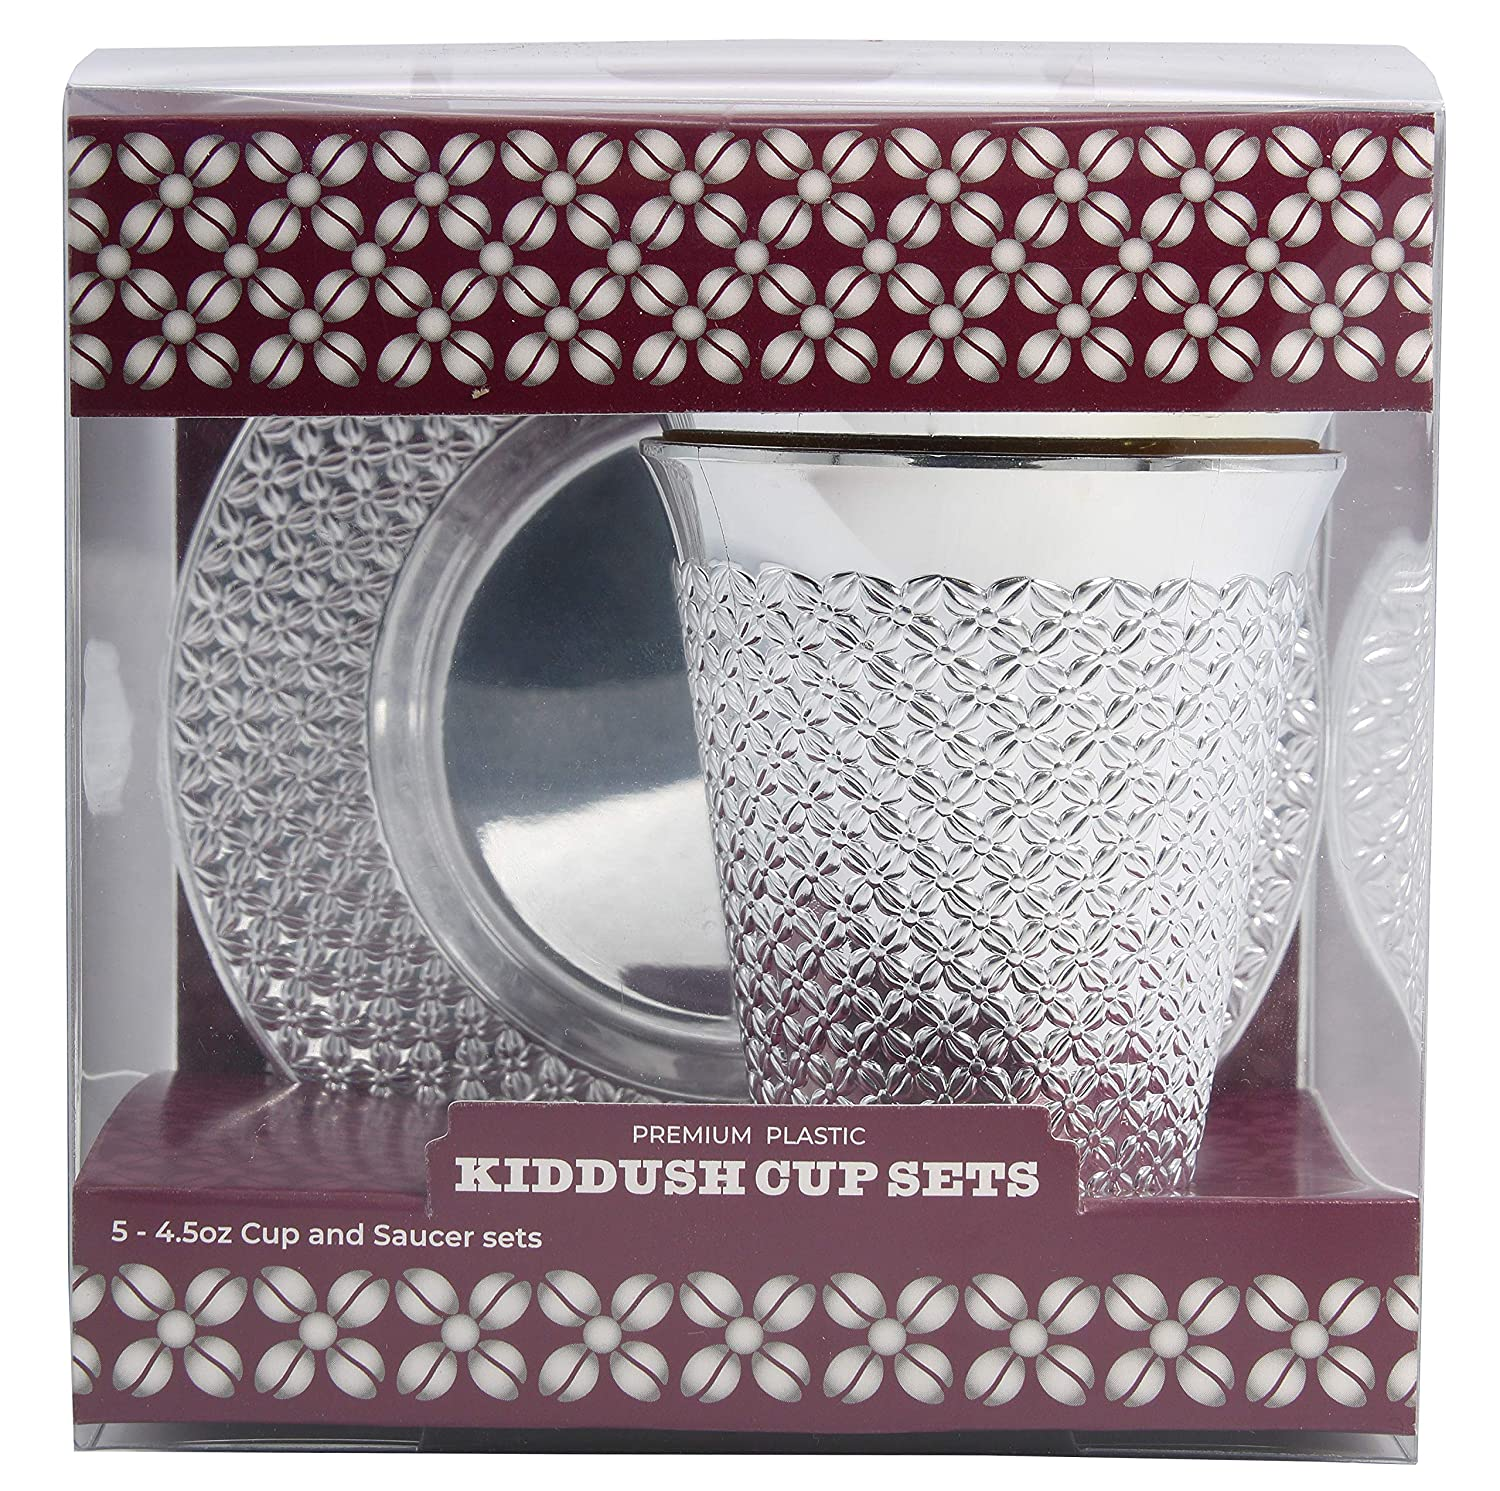 5 Sets Shabbat Exquisite 5.5 oz Disposable Plastic Kiddush Cup and Tatz Silver Cup and Saucer Set for Passover Wedding Brit and Year Round -10 Count